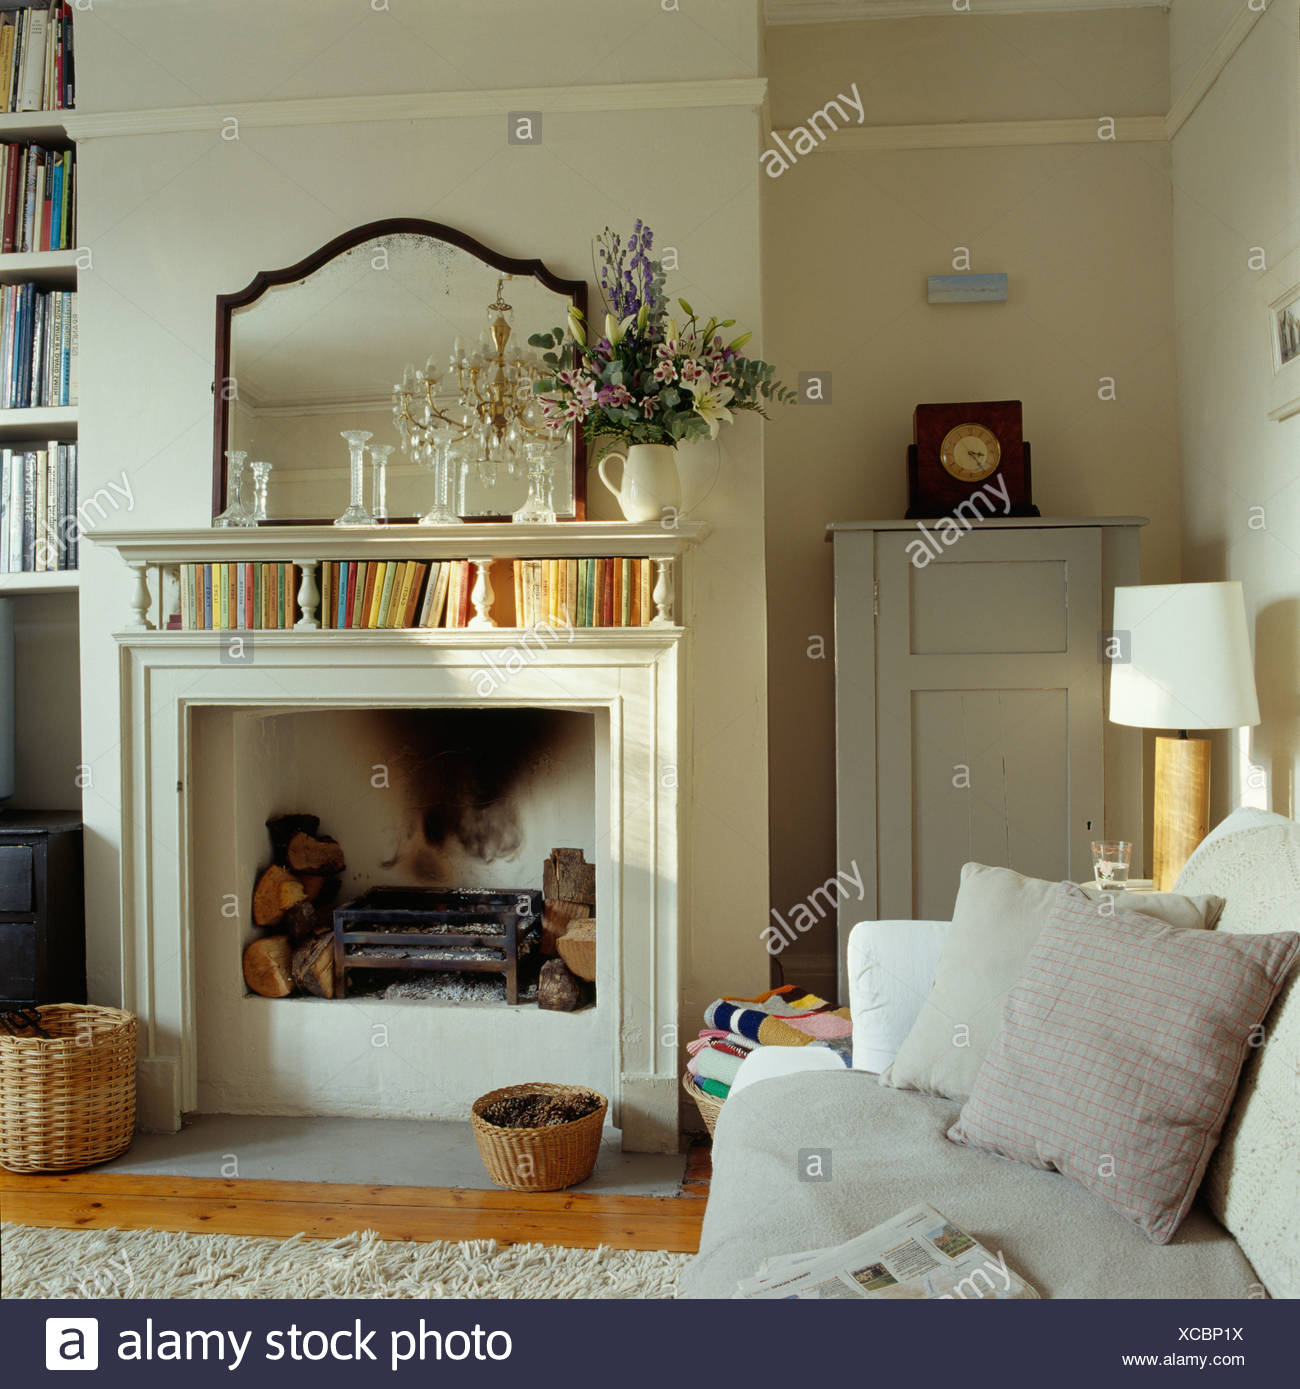 Living Room Cupboard Images: Antique Mirror Above Cream Fireplace In Cream Country